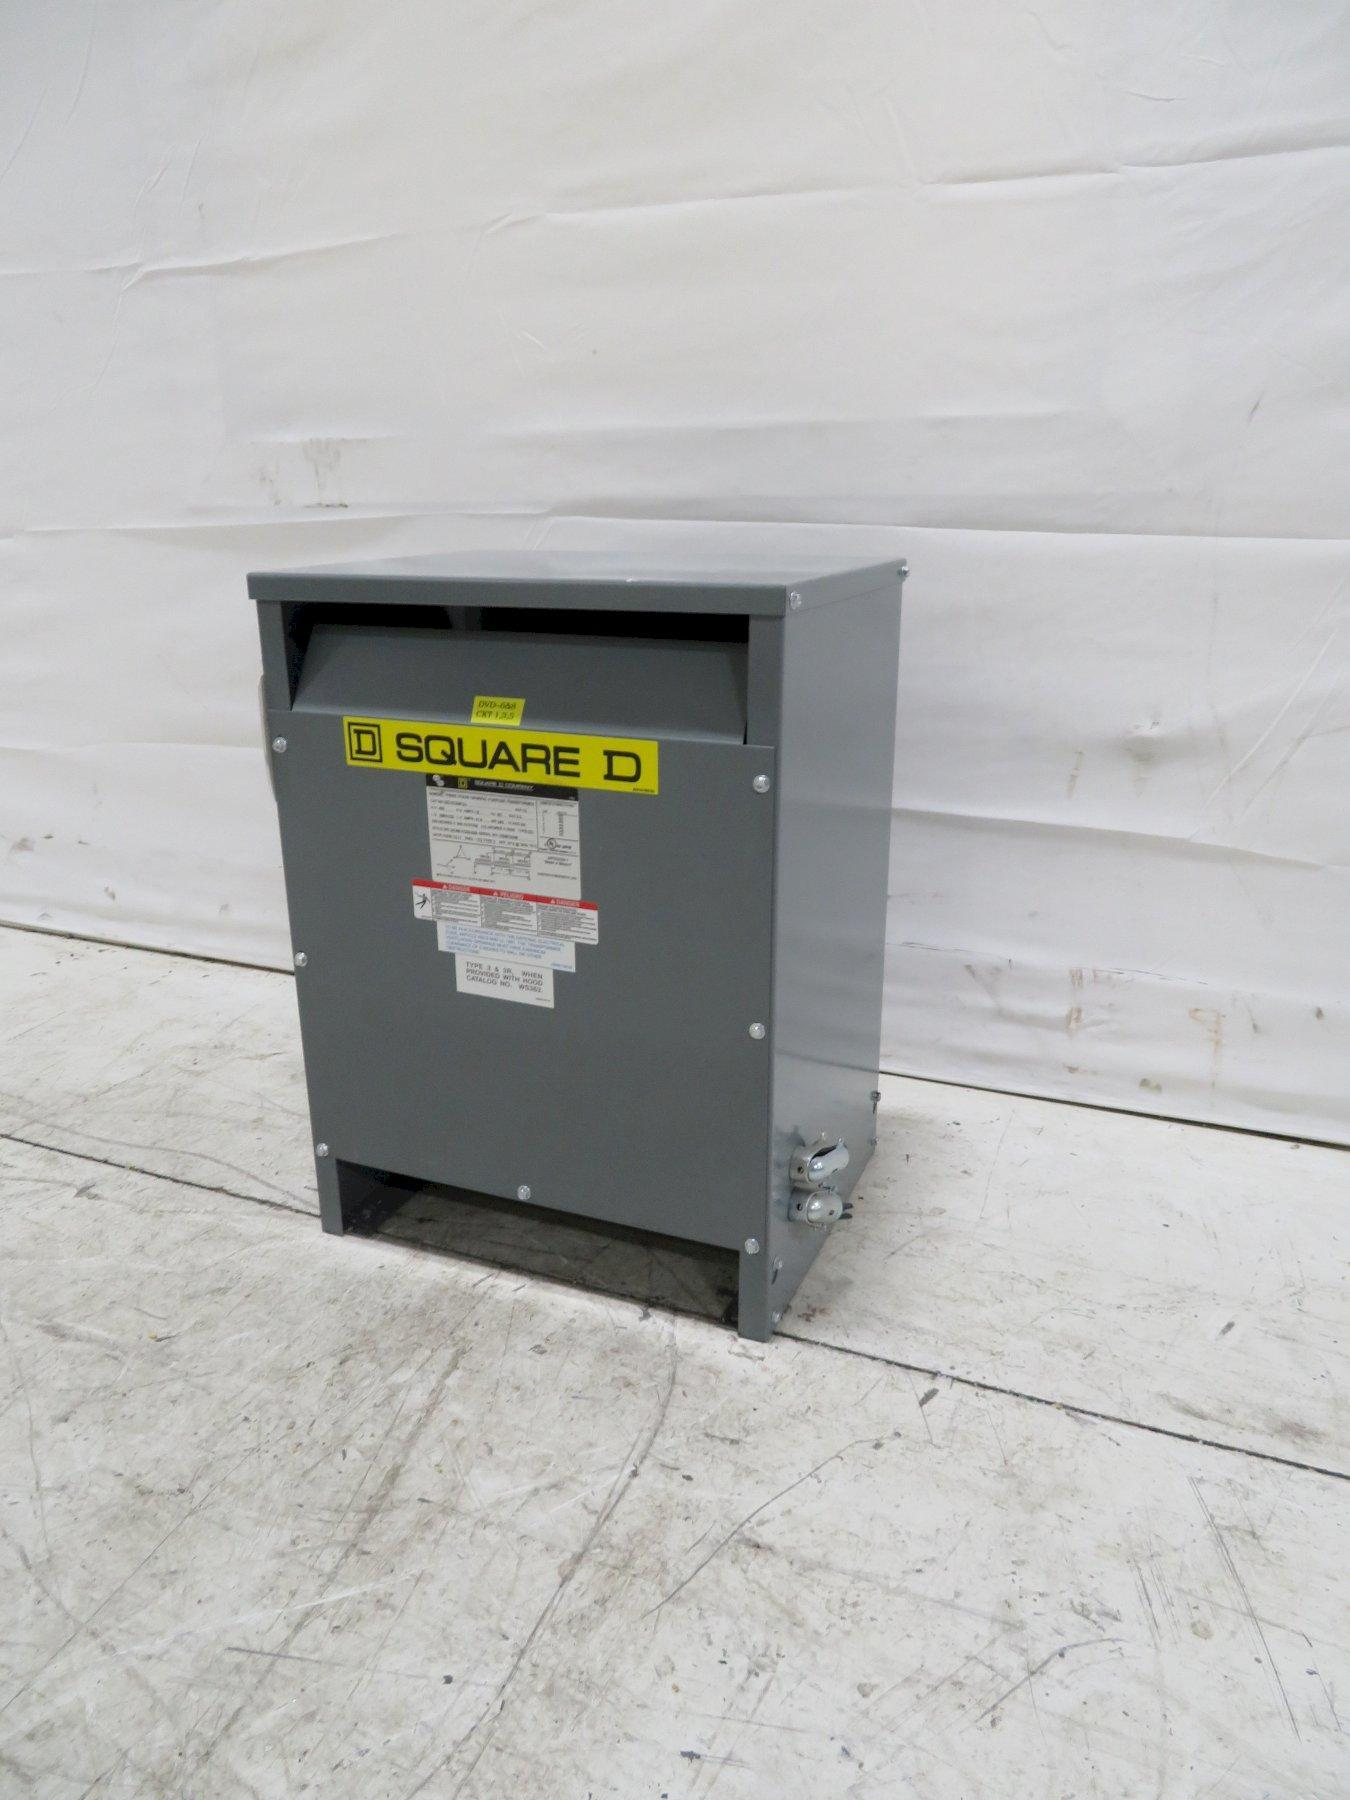 Square D Used EE15T3JFCU 3-Phase Transformer, 15KVA, 480V, 208,V 120V